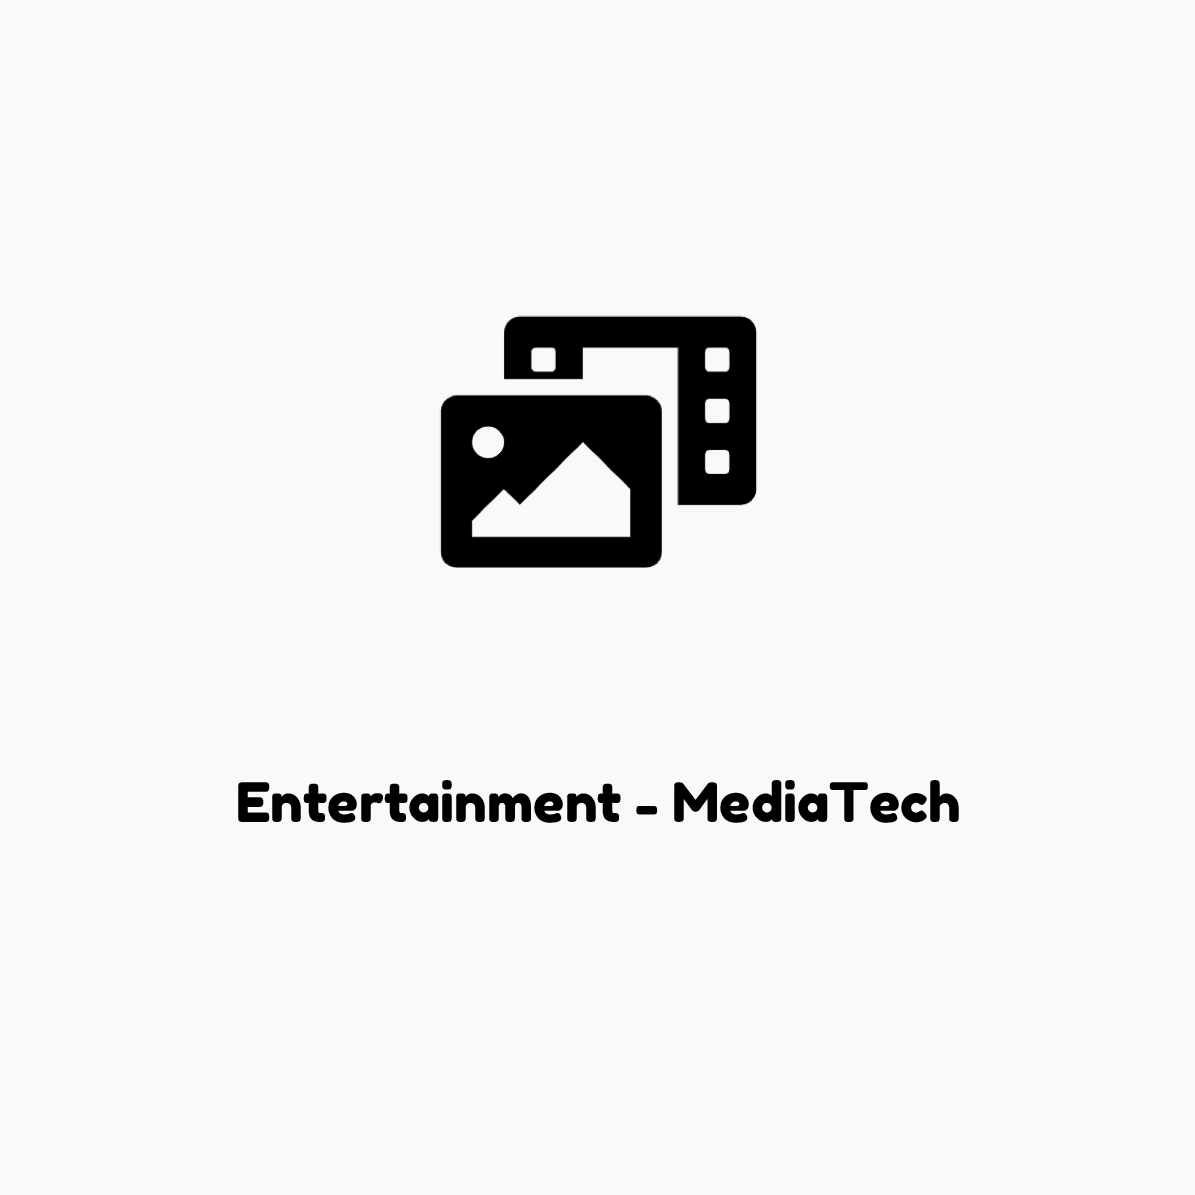 Entertainment-MediaTech